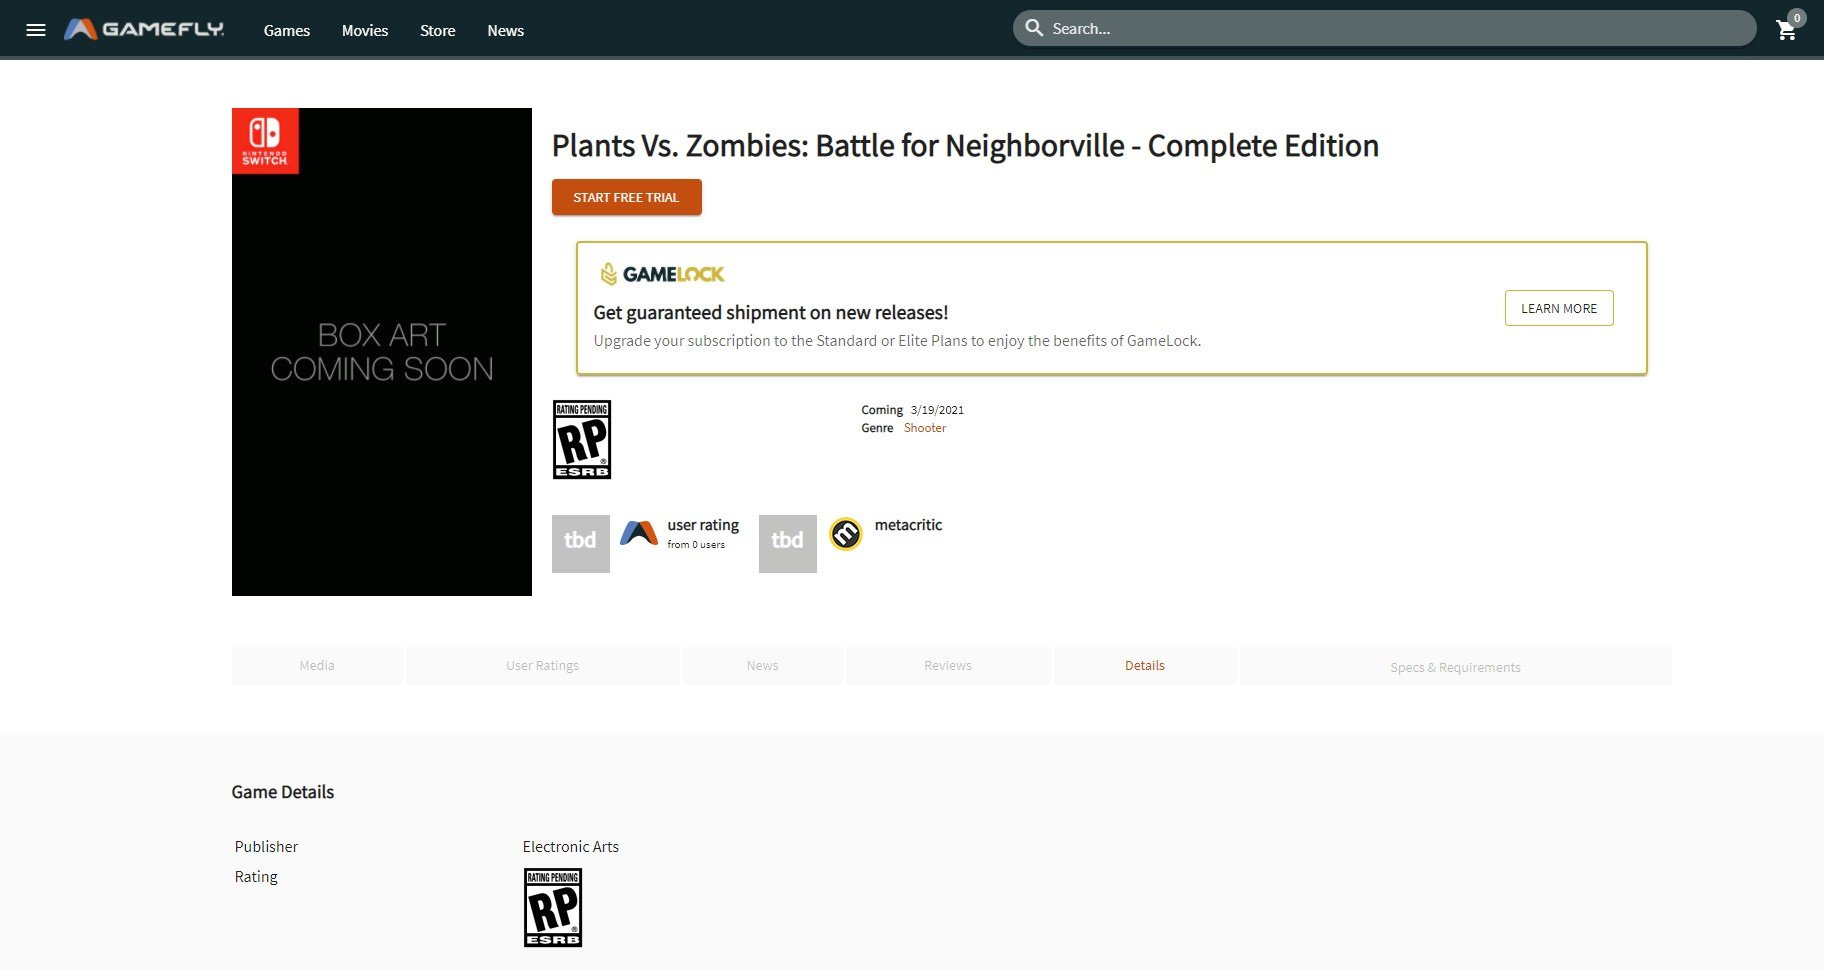 The now-removed GameFly listing for Plants vs. Zombies: Battle for Neighborville - Complete Edition